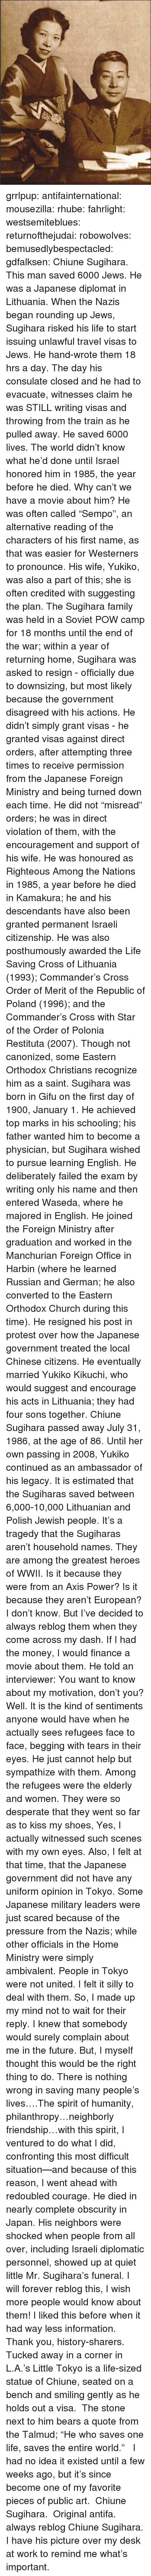 """Church, Desperate, and Family: grrlpup: antifainternational:  mousezilla:  rhube:  fahrlight:  westsemiteblues:  returnofthejudai:  robowolves:  bemusedlybespectacled:  gdfalksen:  Chiune Sugihara. This man saved 6000 Jews. He was a Japanese diplomat in Lithuania. When the Nazis began rounding up Jews, Sugihara risked his life to start issuing unlawful travel visas to Jews. He hand-wrote them 18 hrs a day. The day his consulate closed and he had to evacuate, witnesses claim he was STILL writing visas and throwing from the train as he pulled away. He saved 6000 lives. The world didn't know what he'd done until Israel honored him in 1985, the year before he died.  Why can't we have a movie about him?  He was often called """"Sempo"""", an alternative reading of the characters of his first name, as that was easier for Westerners to pronounce. His wife, Yukiko, was also a part of this; she is often credited with suggesting the plan. The Sugihara family was held in a Soviet POW camp for 18 months until the end of the war; within a year of returning home, Sugihara was asked to resign - officially due to downsizing, but most likely because the government disagreed with his actions. He didn't simply grant visas - he granted visas against direct orders, after attempting three times to receive permission from the Japanese Foreign Ministry and being turned down each time. He did not """"misread"""" orders; he was in direct violation of them, with the encouragement and support of his wife. He was honoured as Righteous Among the Nations in 1985, a year before he died in Kamakura; he and his descendants have also been granted permanent Israeli citizenship. He was also posthumously awarded the Life Saving Cross of Lithuania (1993); Commander's Cross Order of Merit of the Republic of Poland (1996); and the Commander's Cross with Star of the Order of Polonia Restituta (2007). Though not canonized, some Eastern Orthodox Christians recognize him as a saint. Sugihara was born in Gifu on the first """